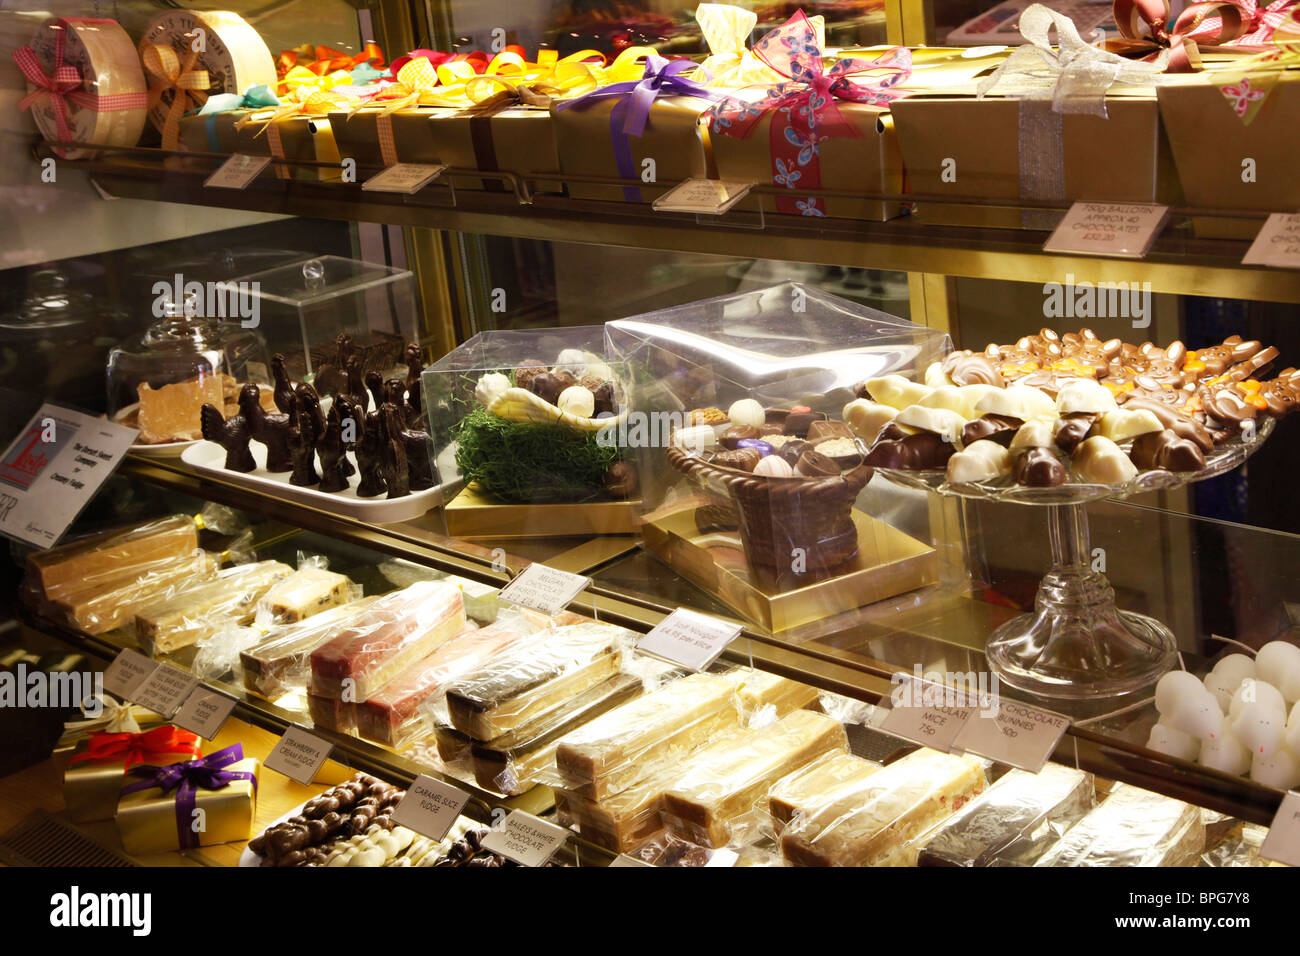 Chocolates and confectionery in a specialist upmarket shop in Salisbury, Wiltshire, England, UK - Stock Image